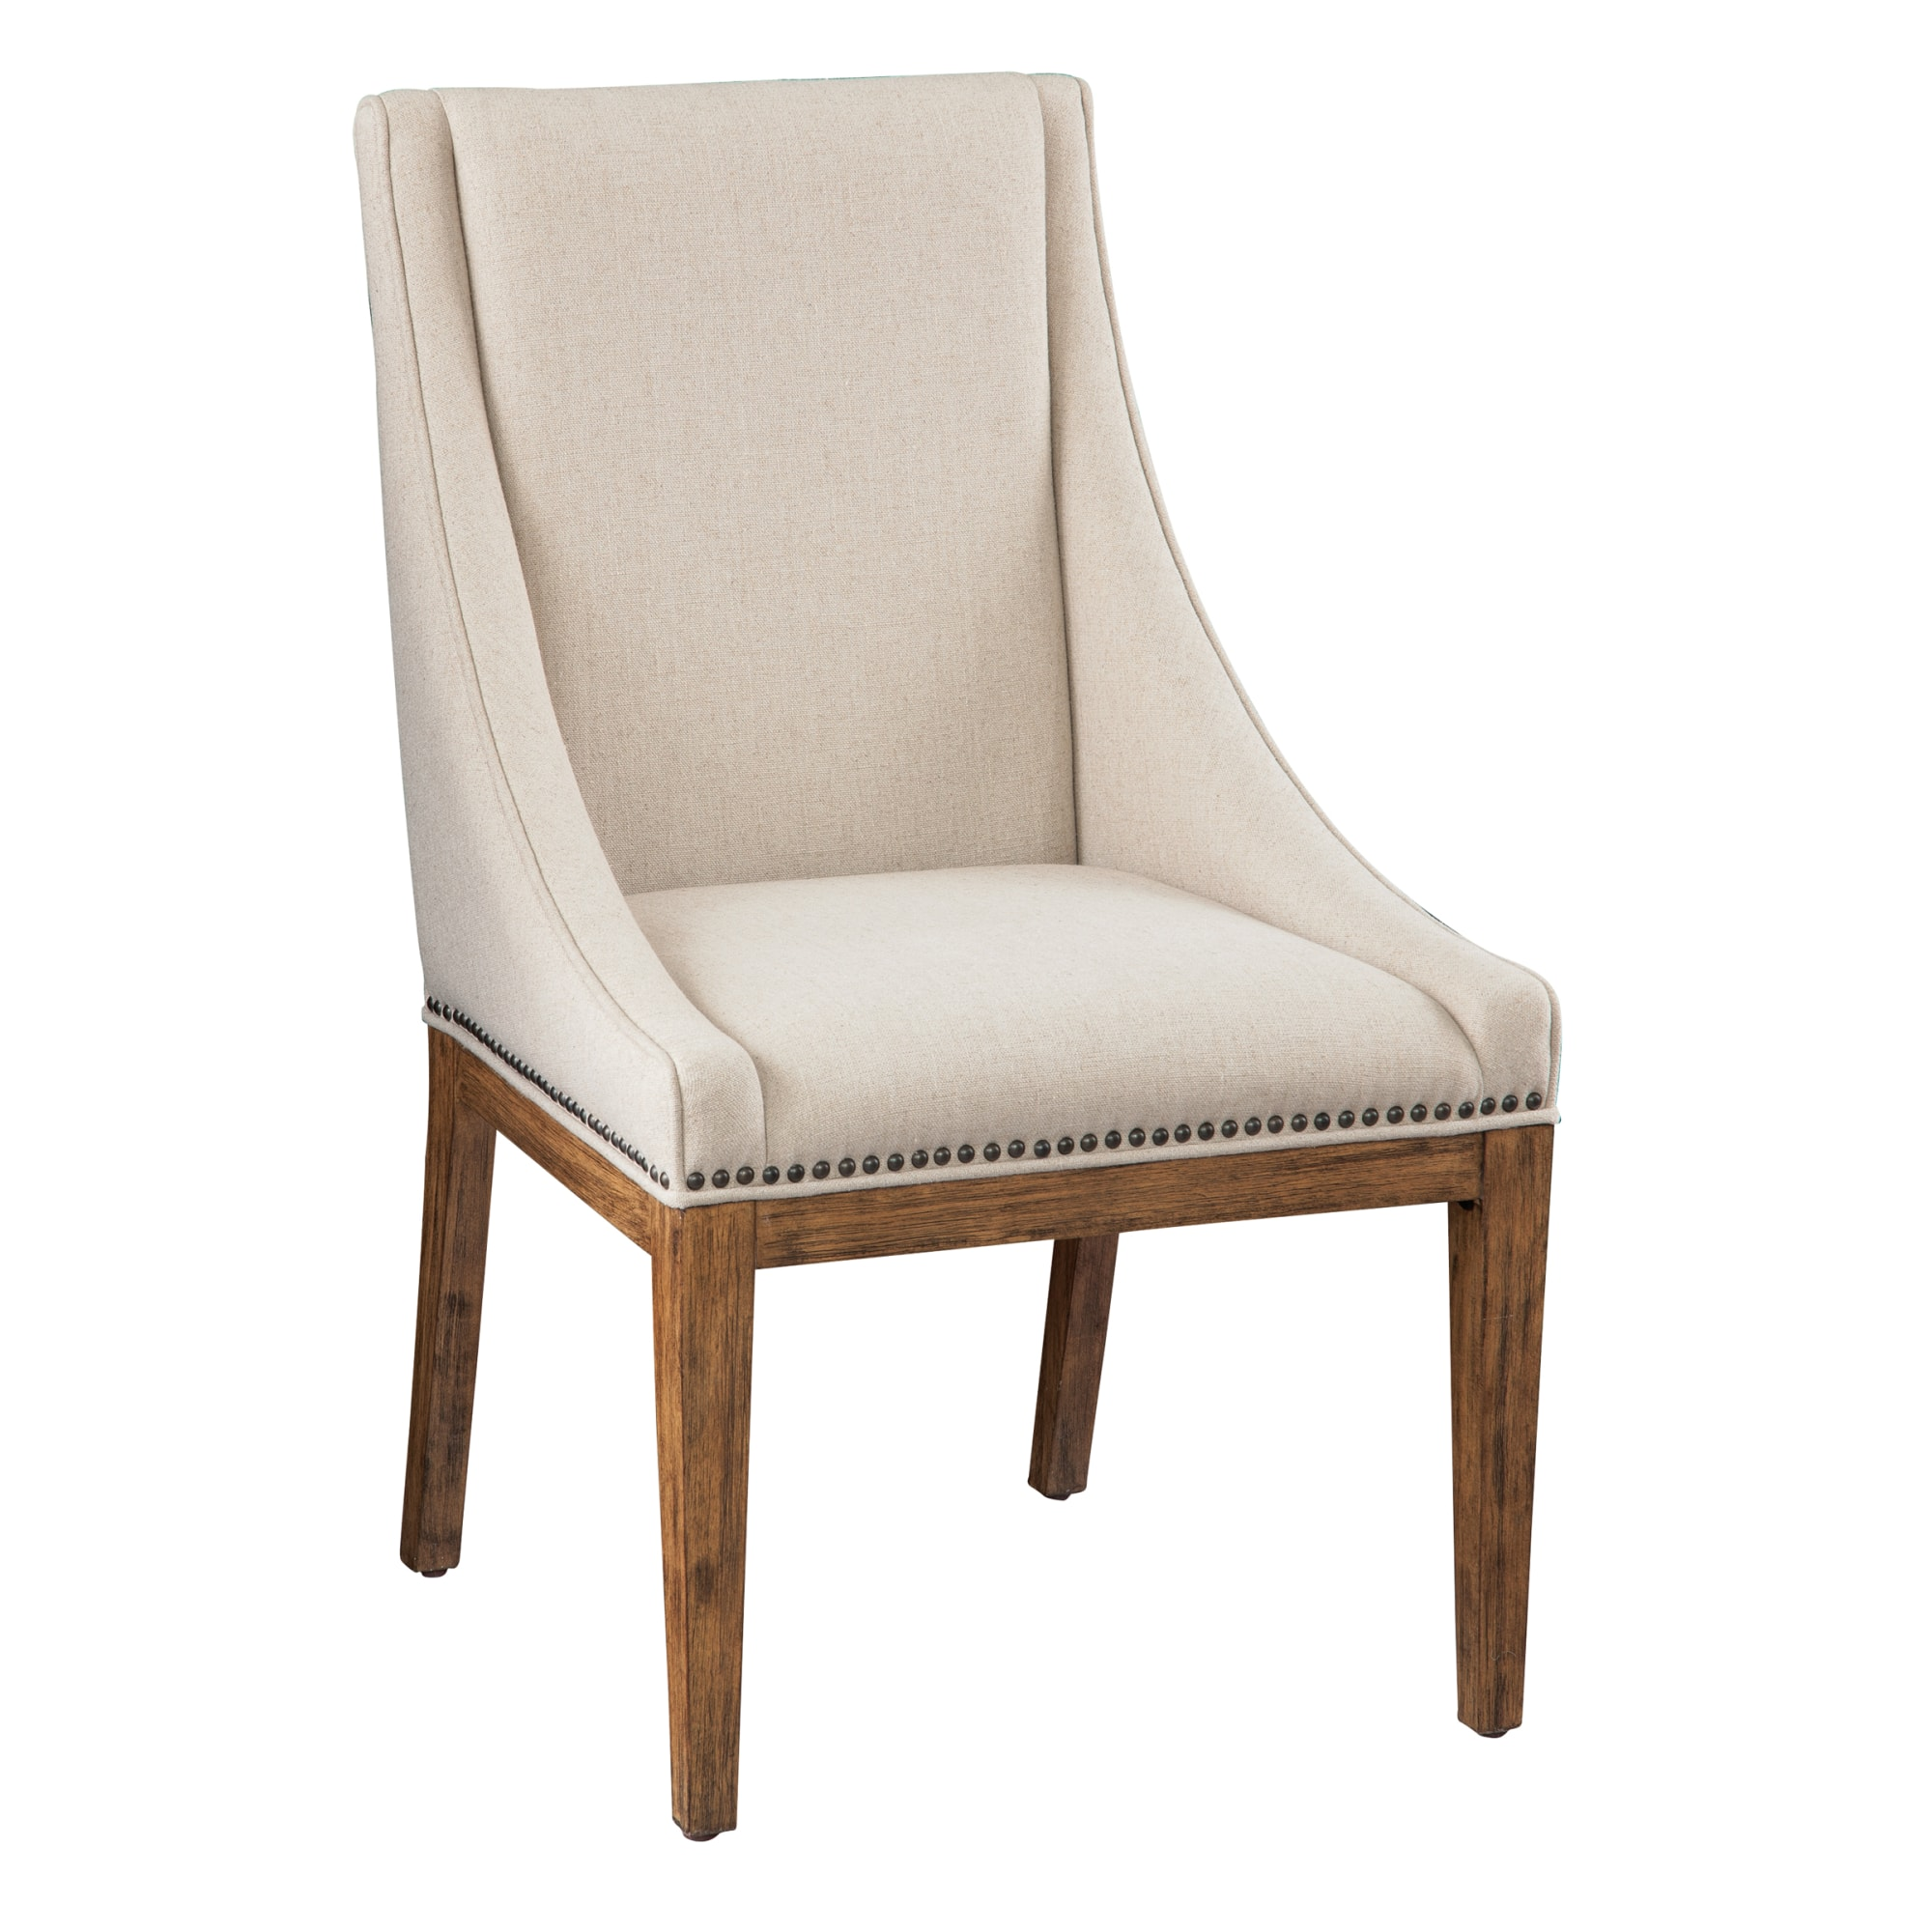 Image for 2-3724 Bedford Park Sling Arm Chair from Hekman Official Website